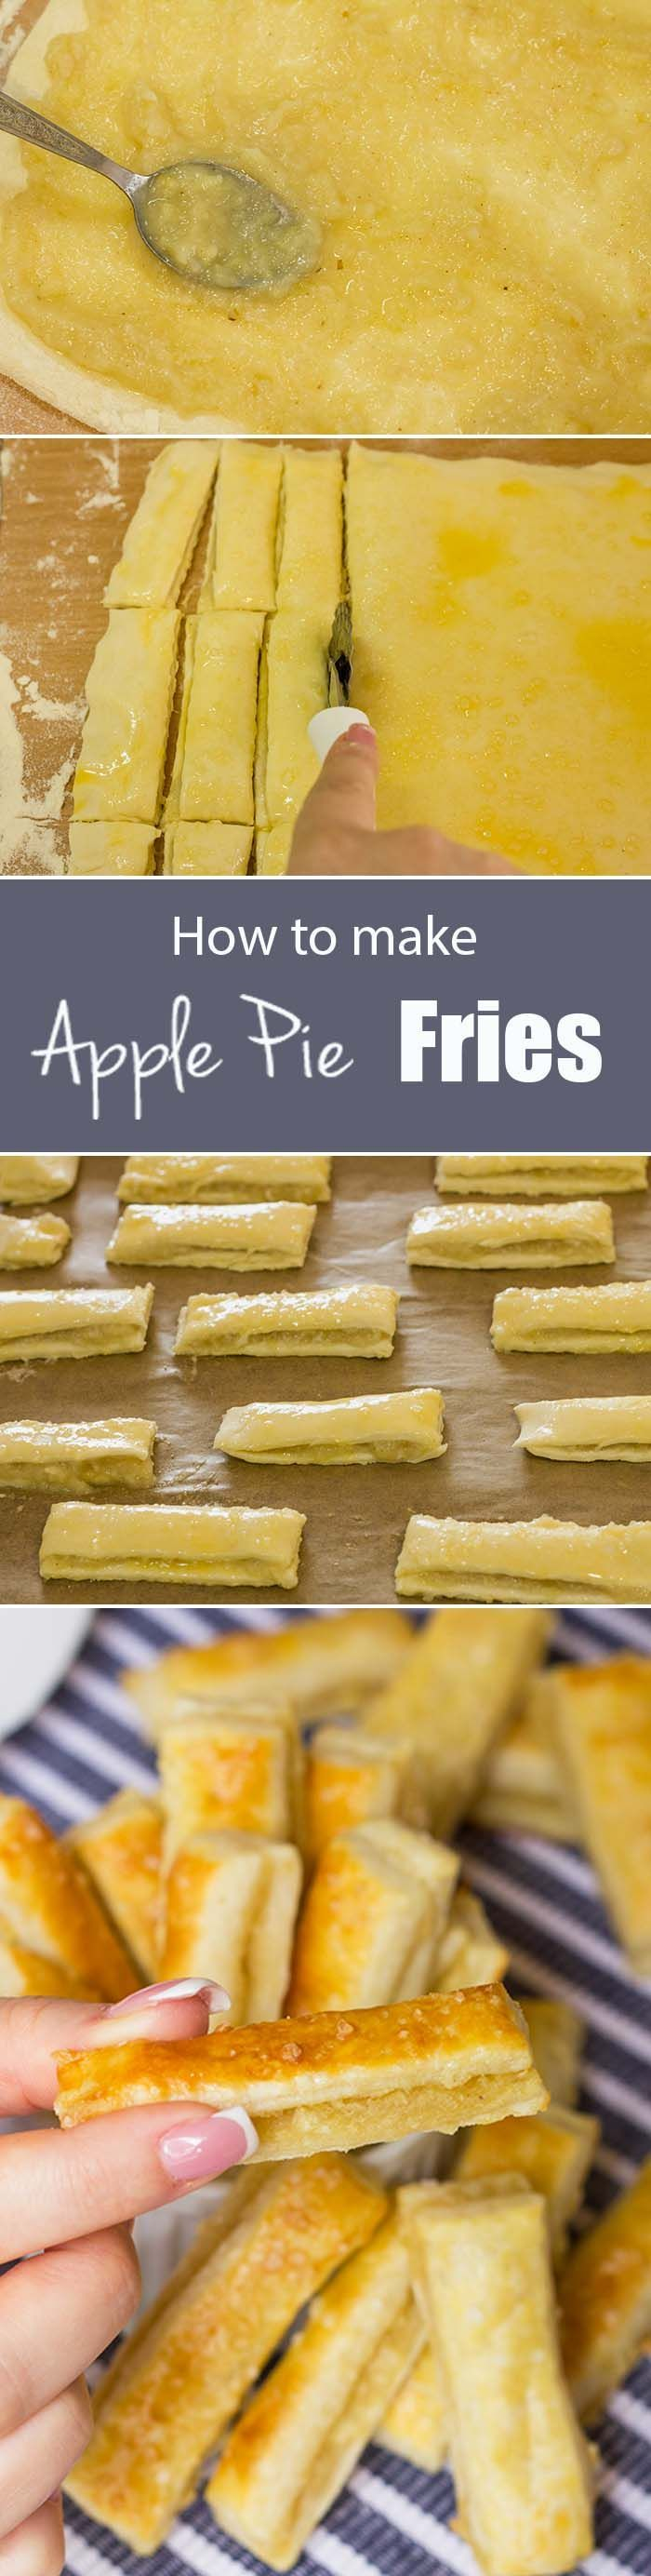 Apple Pie Fries Recipe - Yummy, crispy and healthy apple fries tossed with cinnamon and sugar (scheduled via http://www.tailwindapp.com?utm_source=pinterest&utm_medium=twpin&utm_content=post998445&utm_campaign=scheduler_attribution)